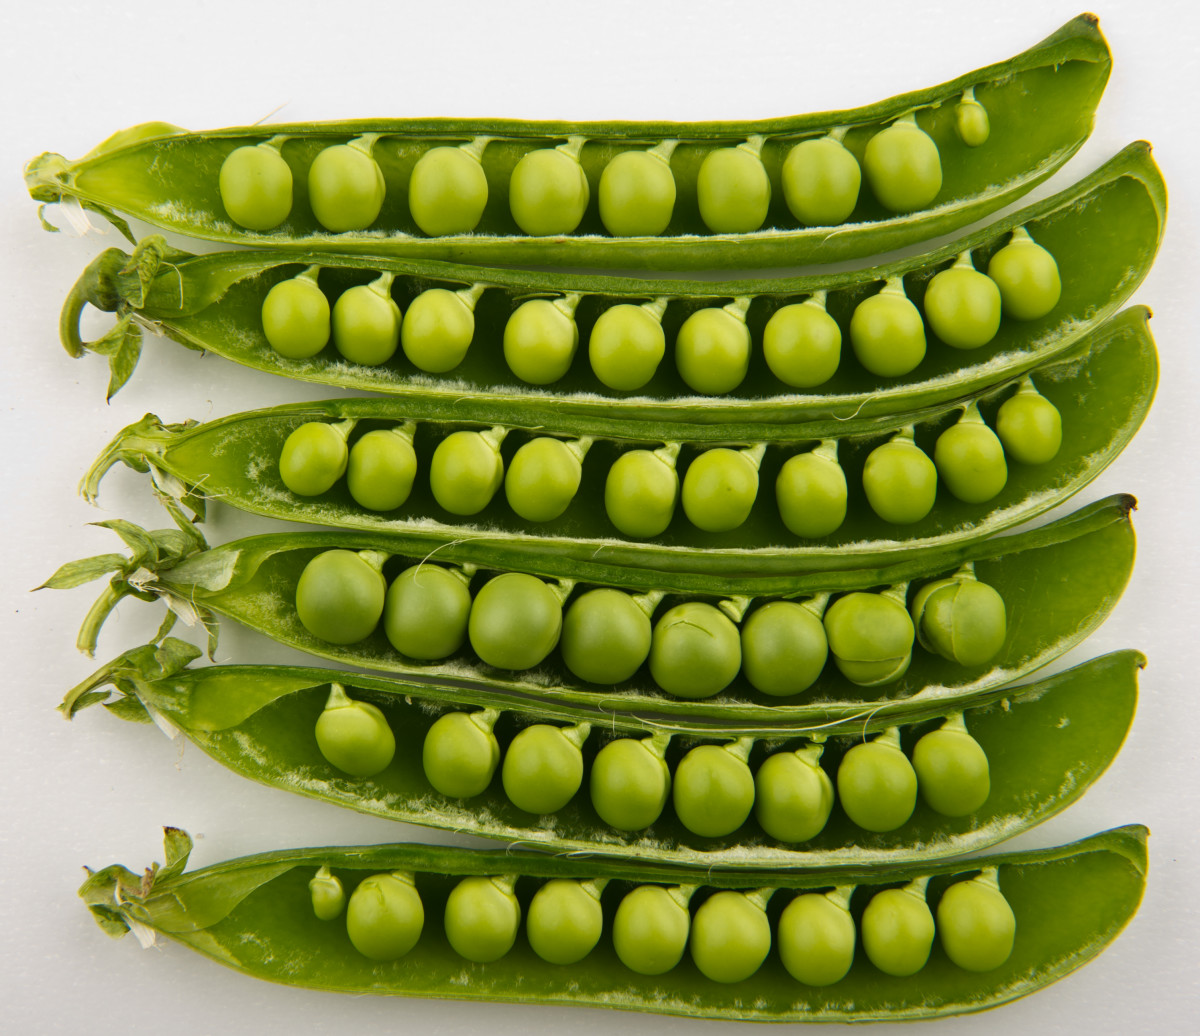 Health Benefits Of Peas - Green Peas